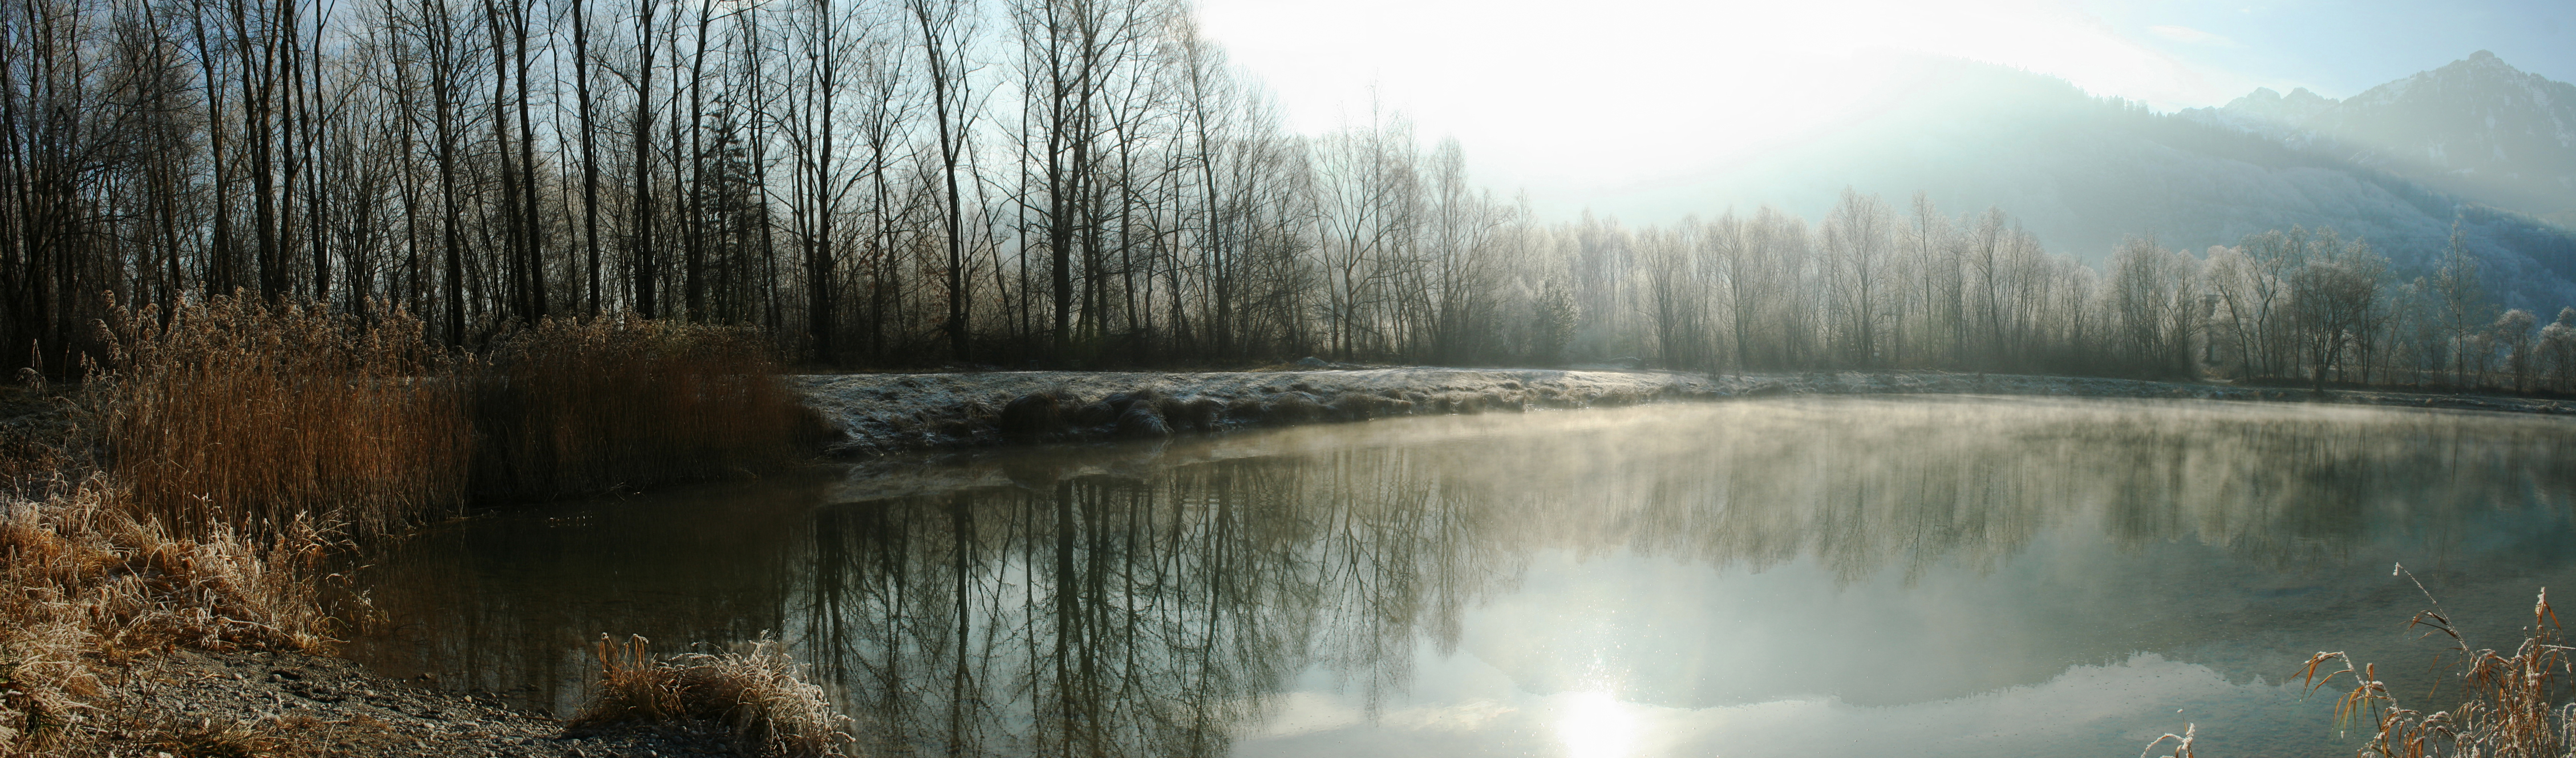 Mist.river svg #4, Download drawings